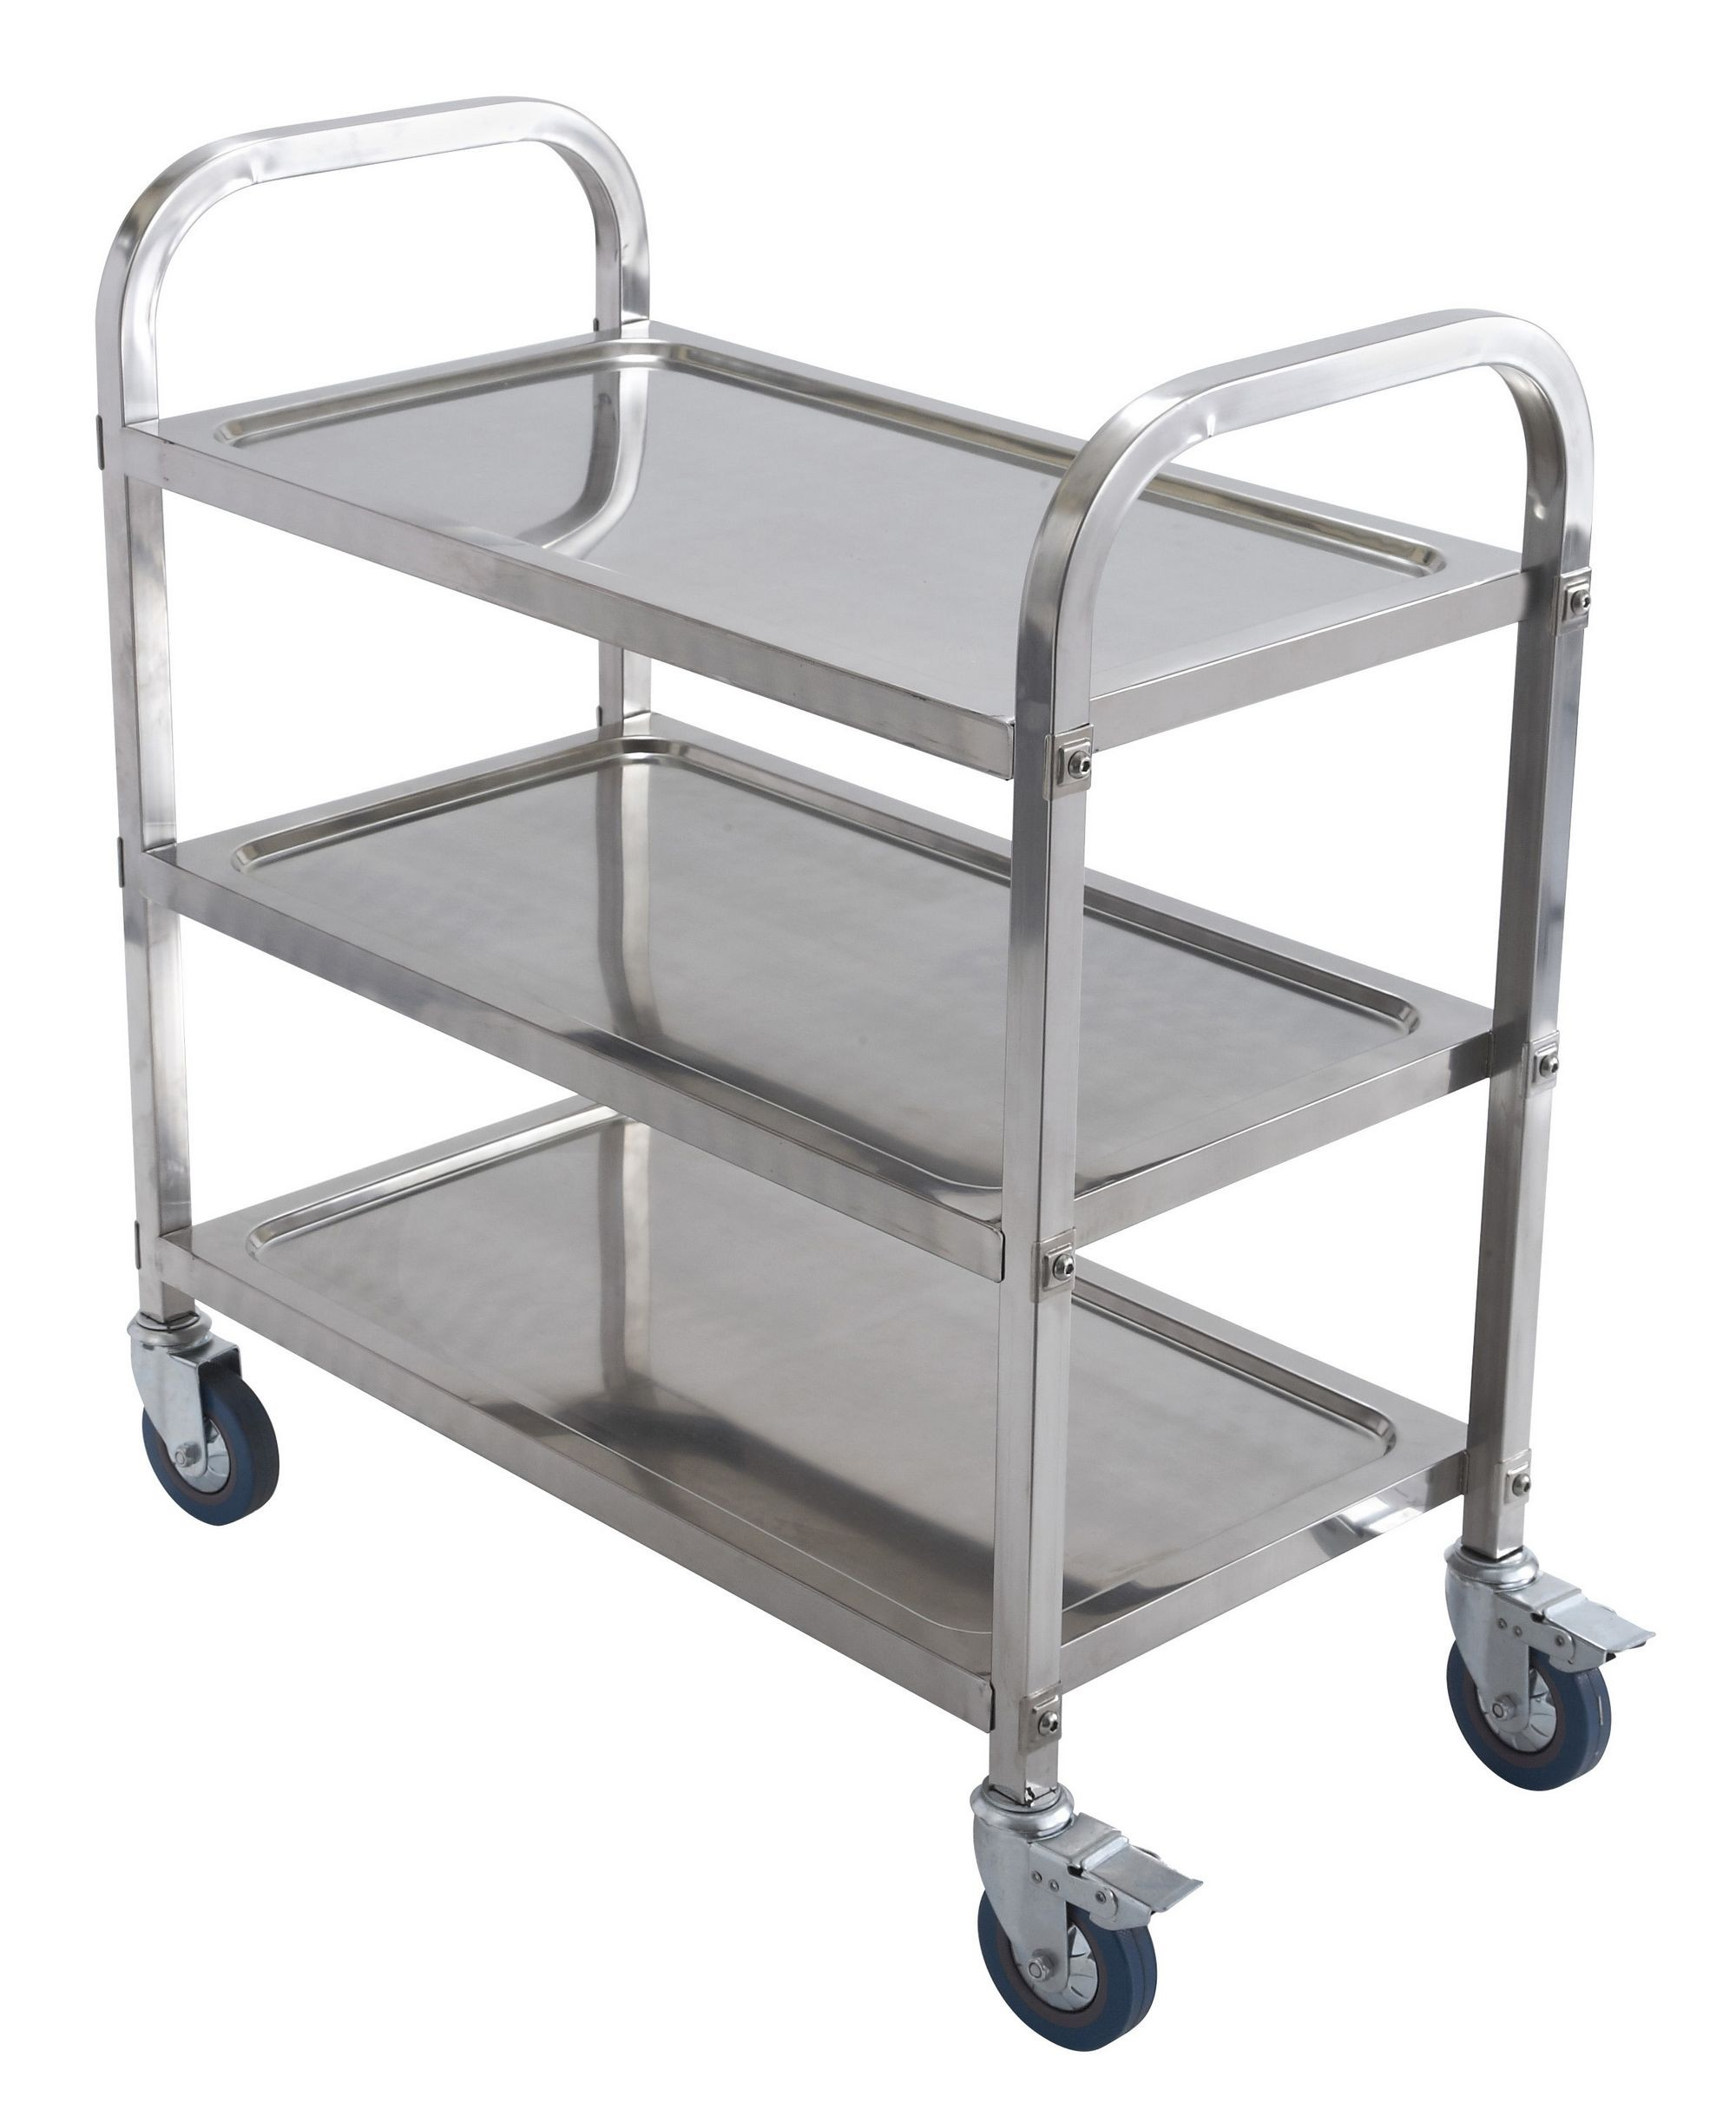 "Winco SUC-30 Stainless Steel 3-Tier Utility Cart 27-3/5"" x 15-9/10"" x 33-1/2"""